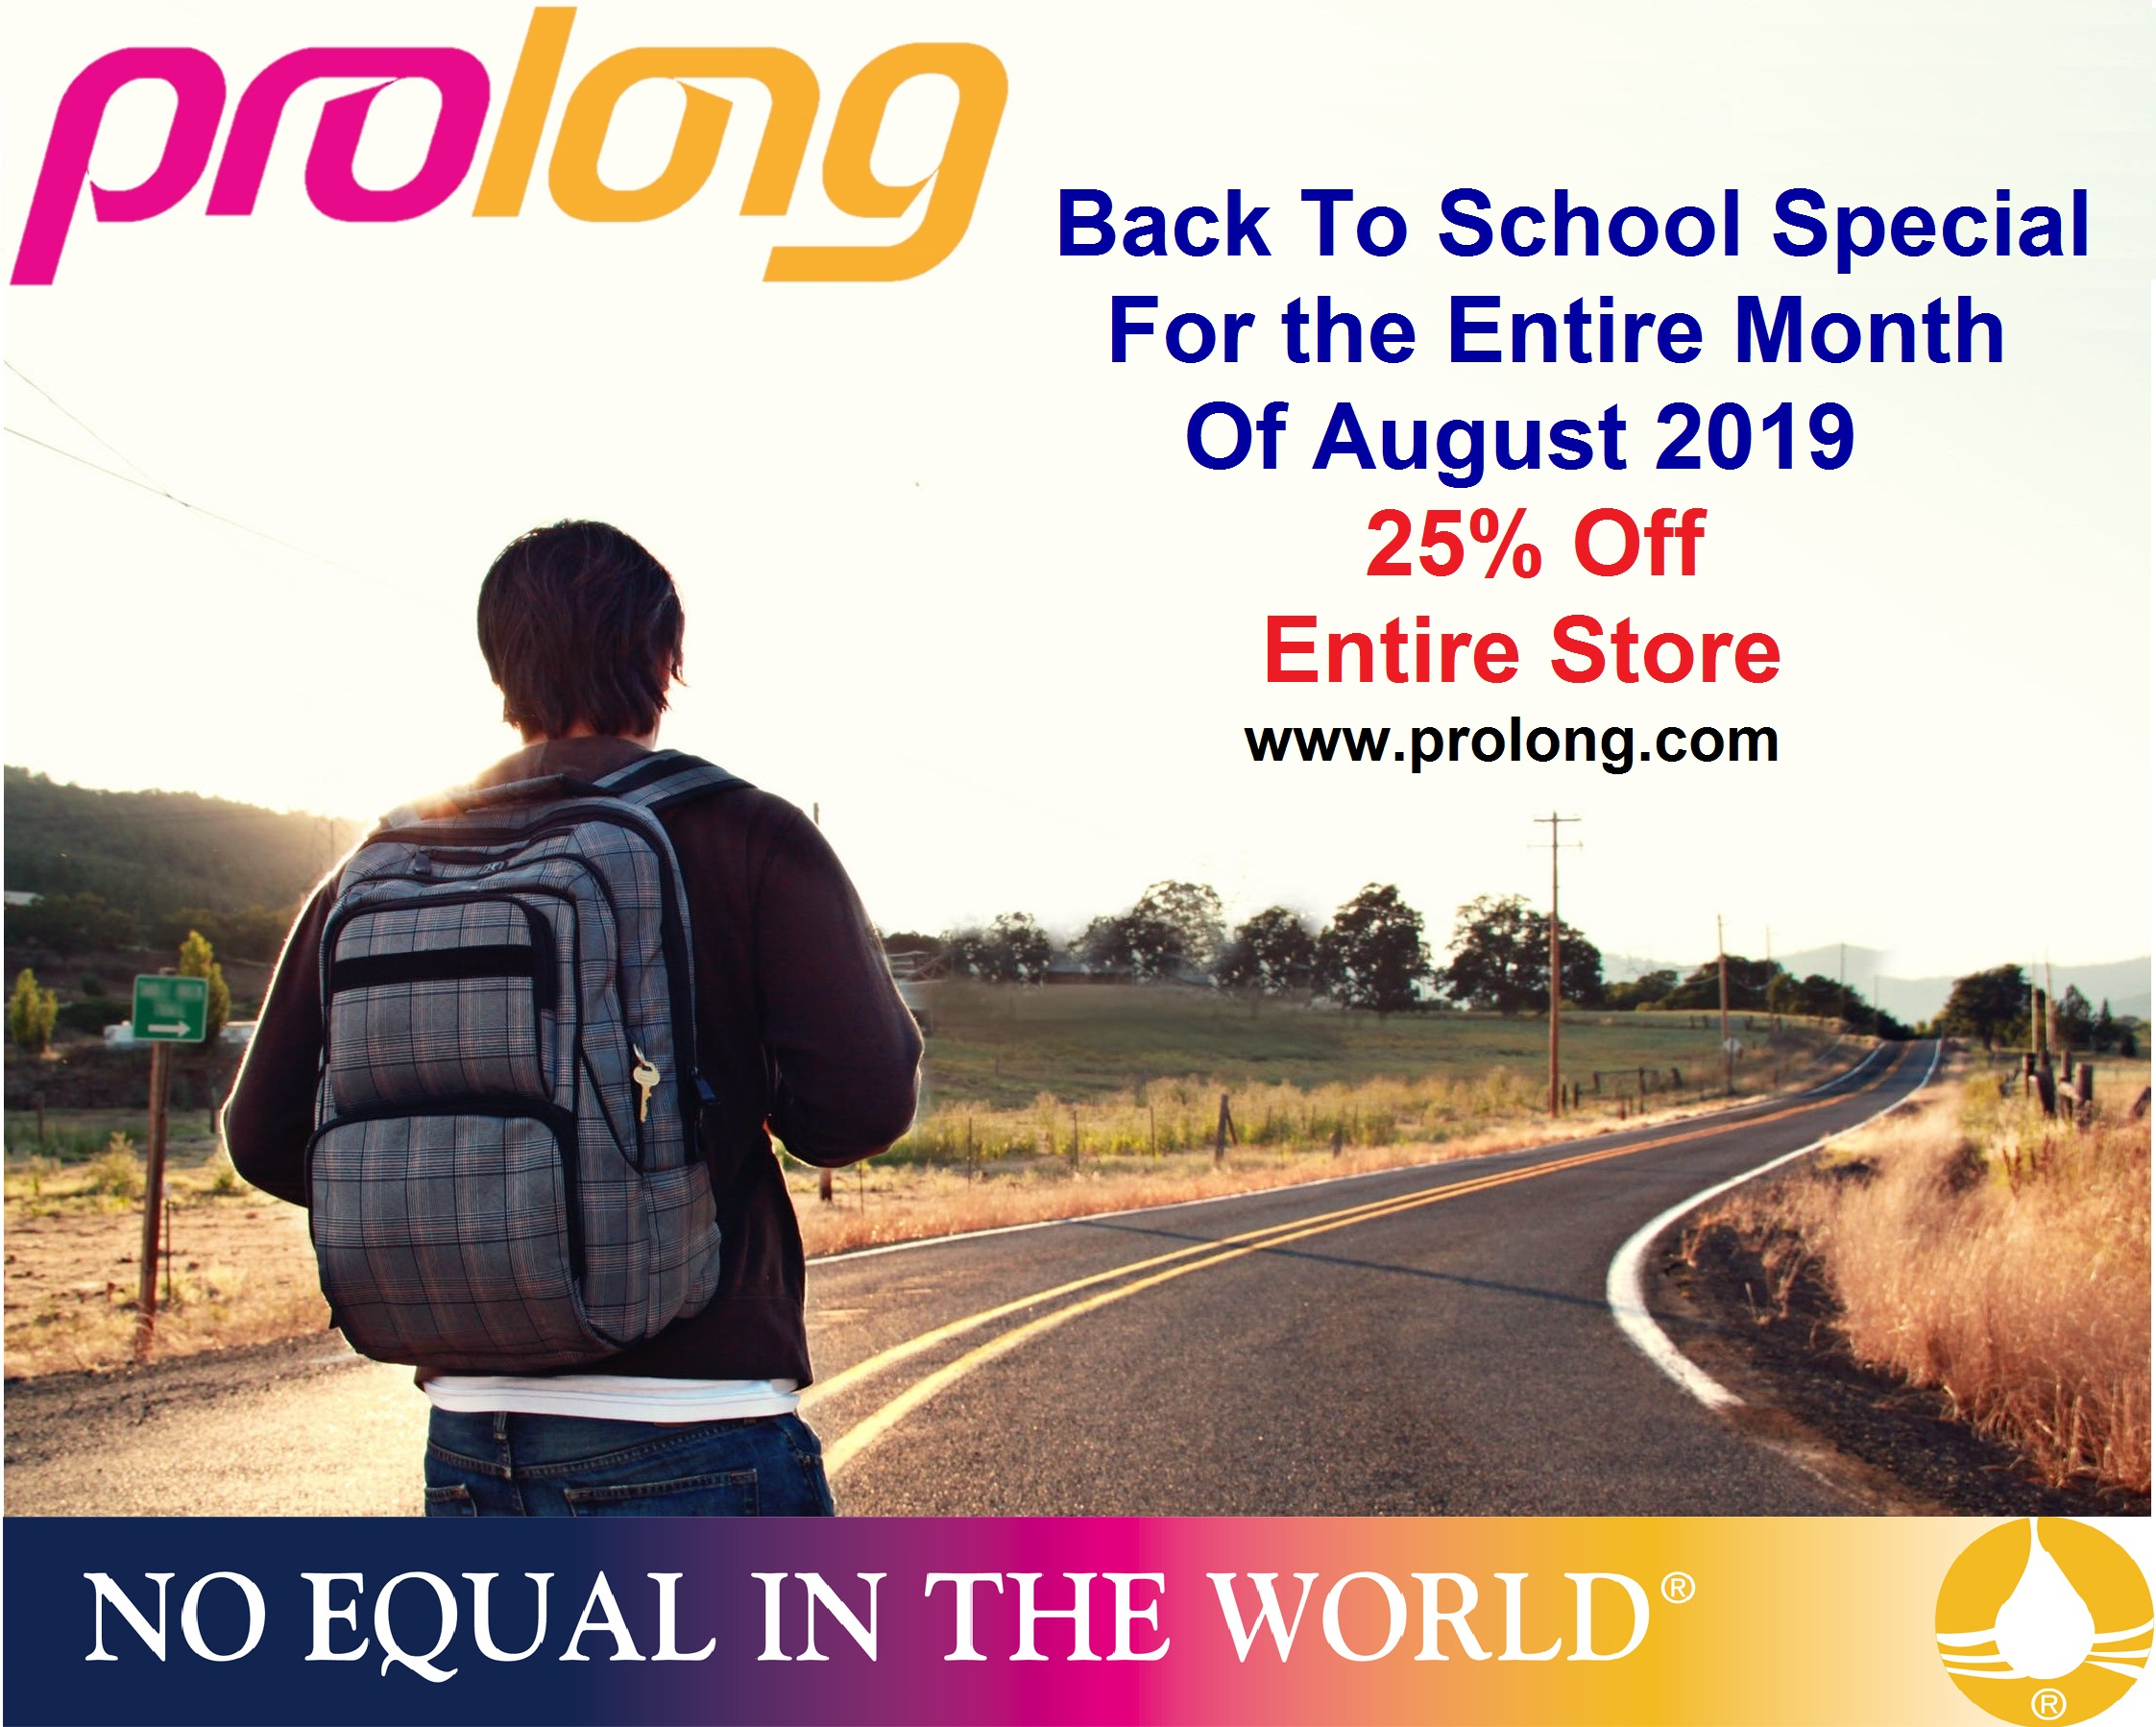 Celebrate Back to School with Prolong